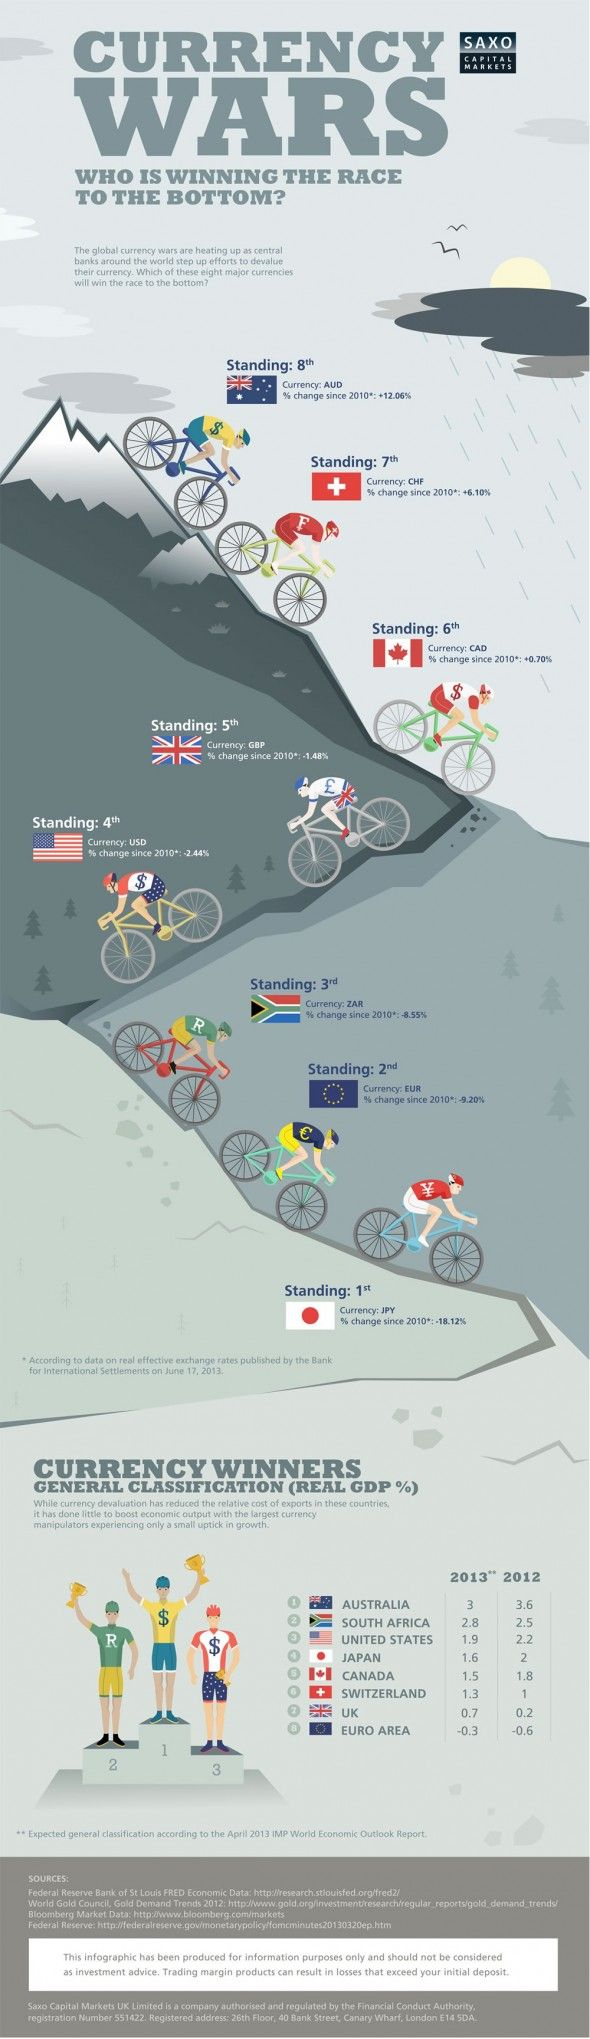 Infographic: Who Will Win the Race to the Bottom in the Latest Currency War? #forex